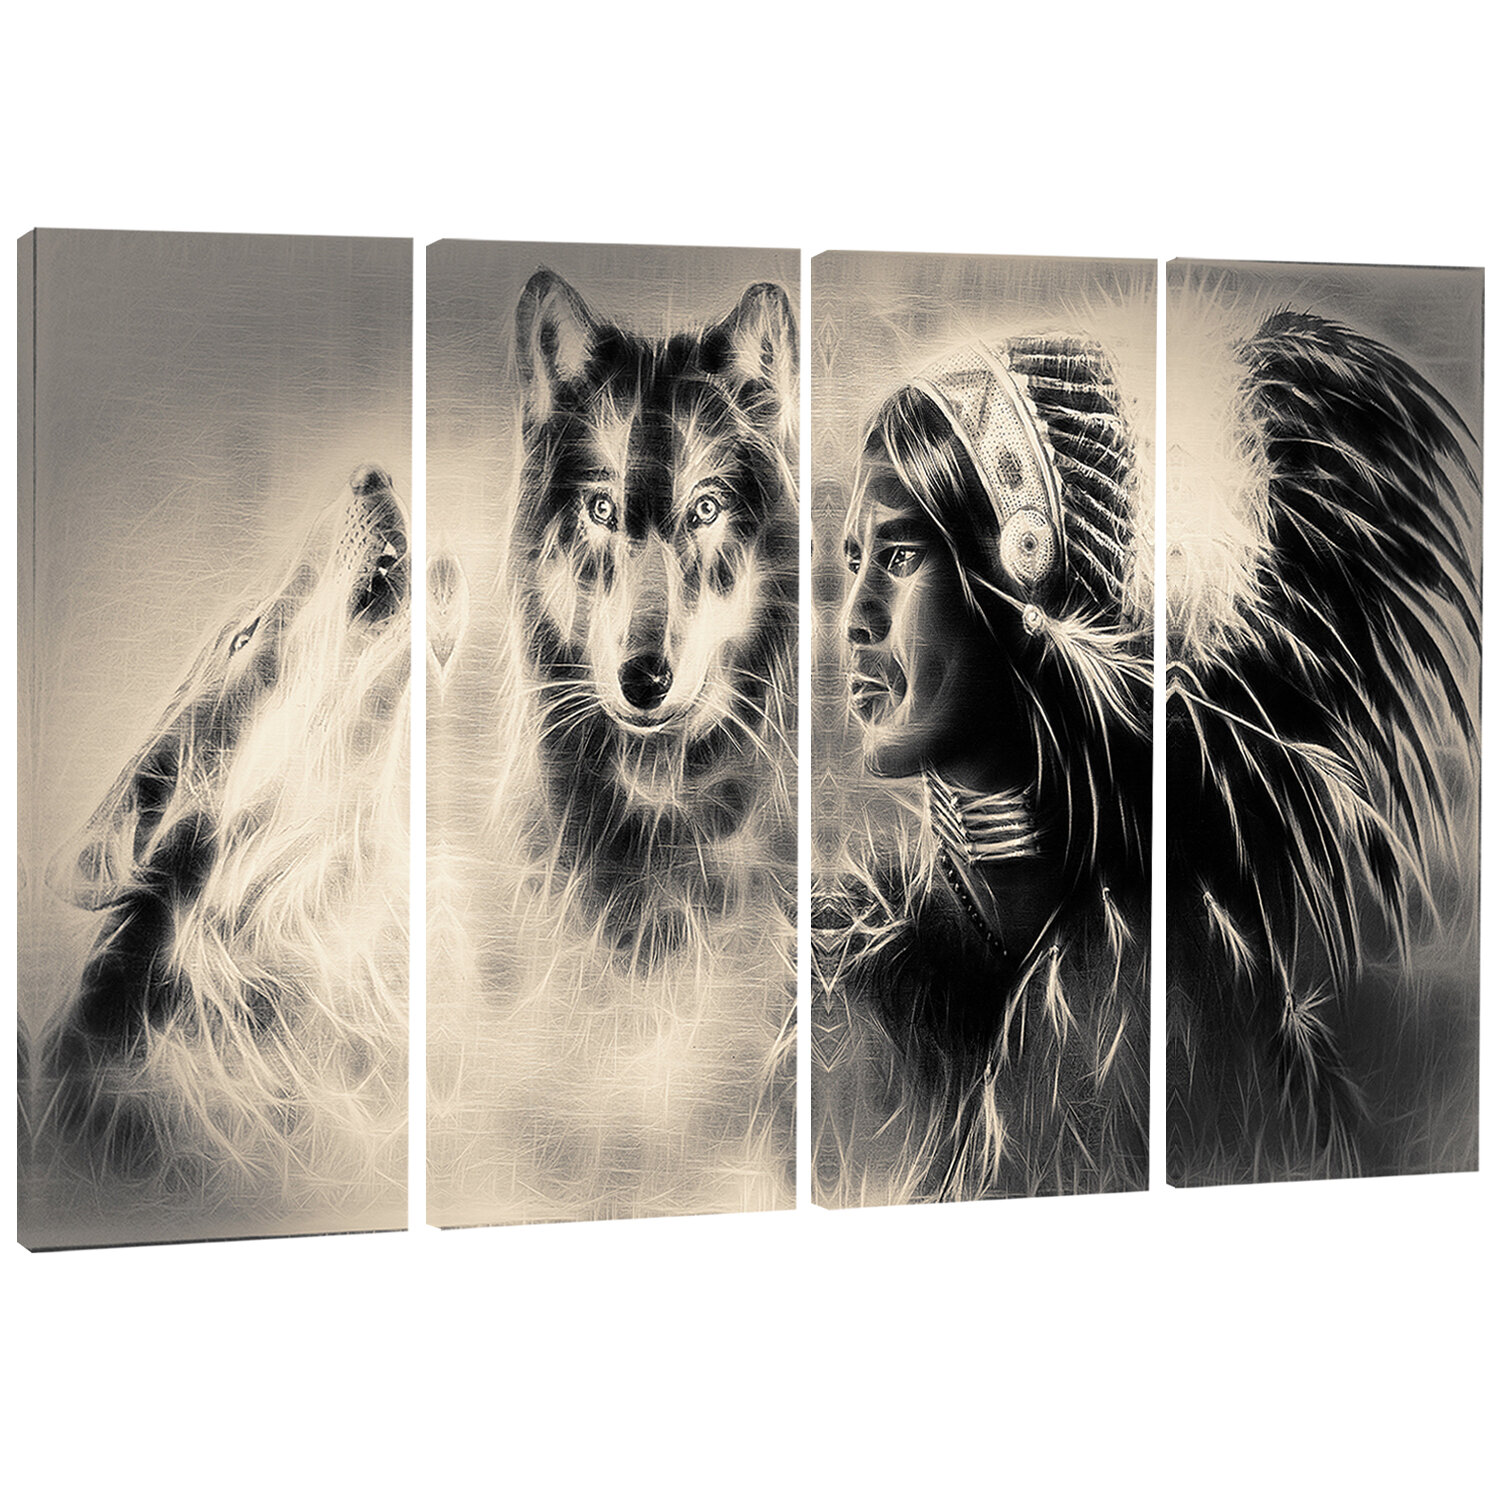 Designart Indian Warrior With Wolves Digital 4 Piece Graphic Art On Wrapped Canvas Set Wayfair